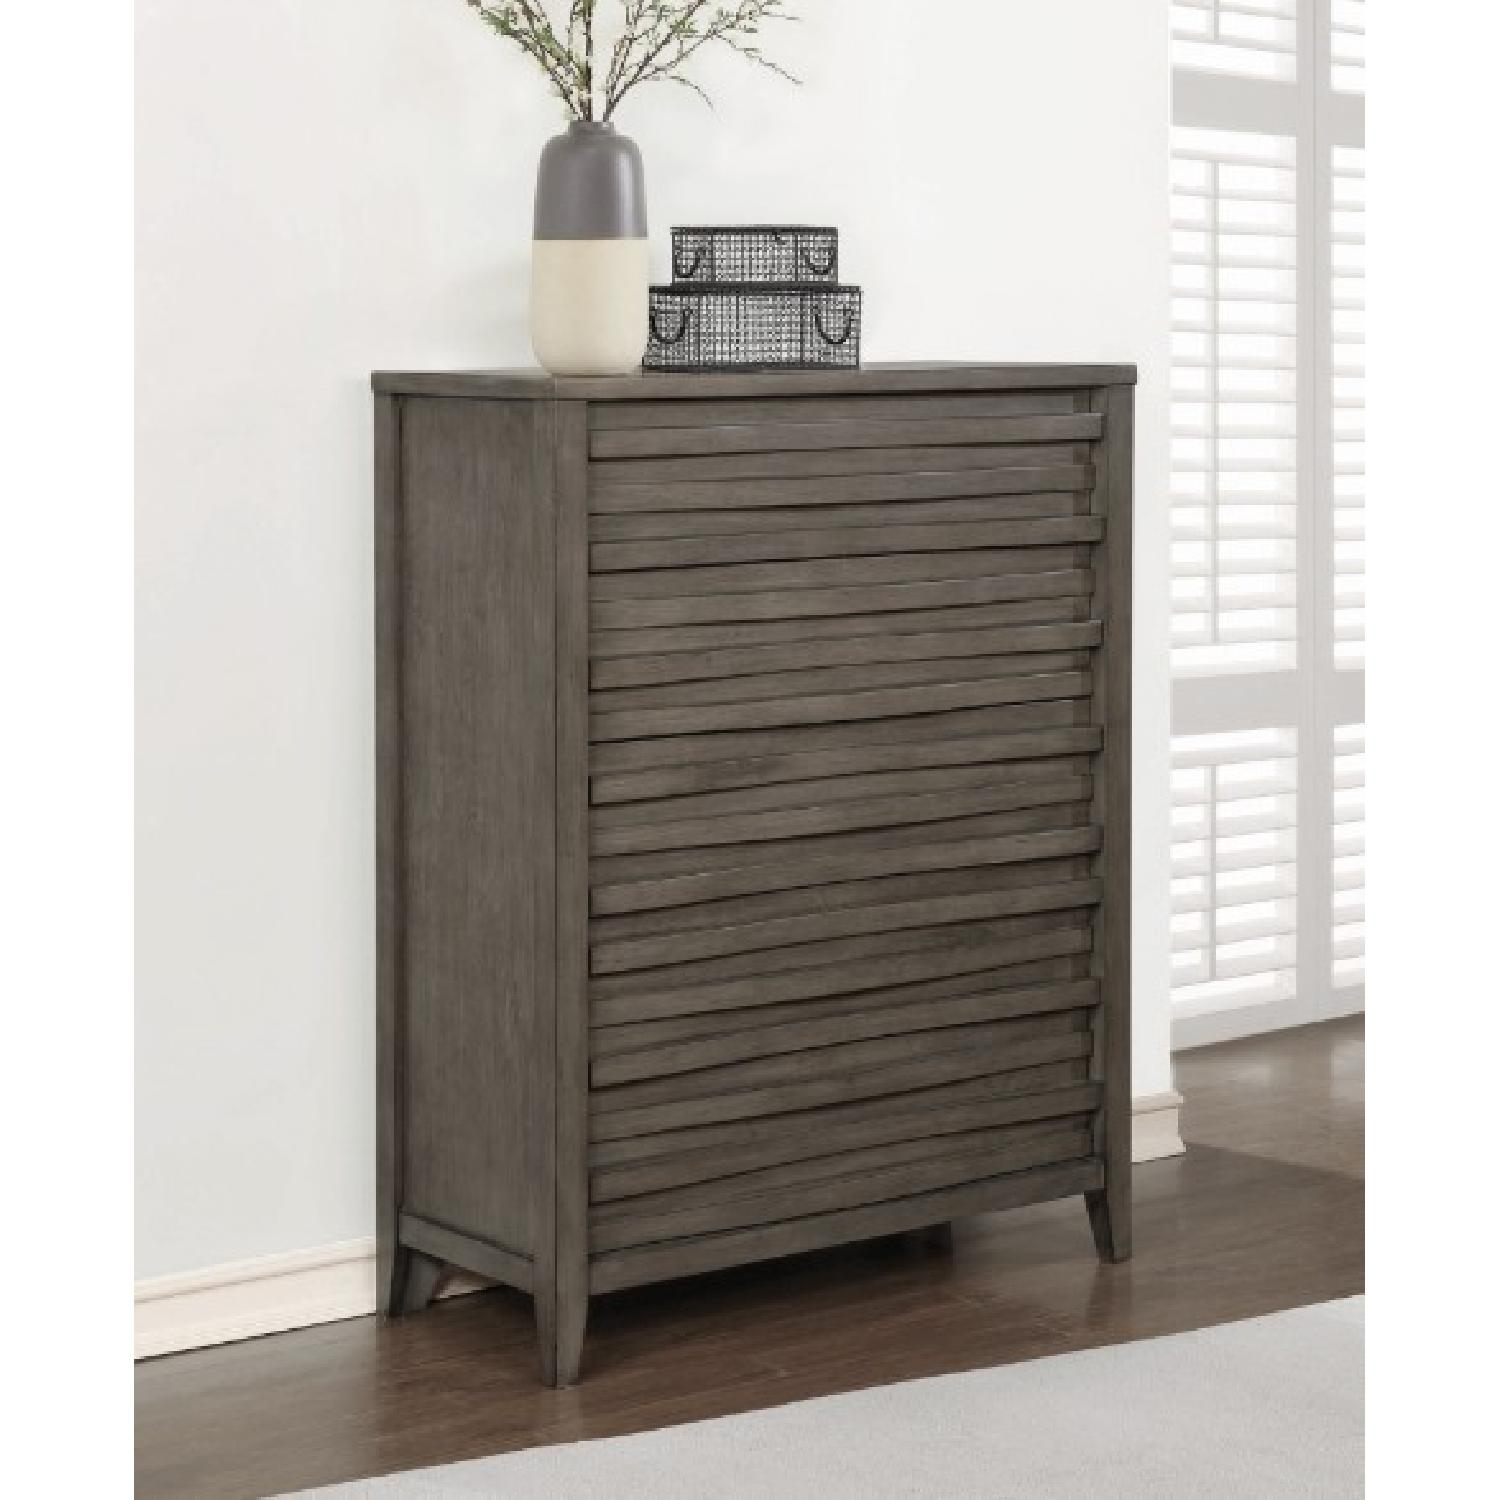 Modern Chest in Dark Taupe w/ Wave-Like Drawer Face - image-2